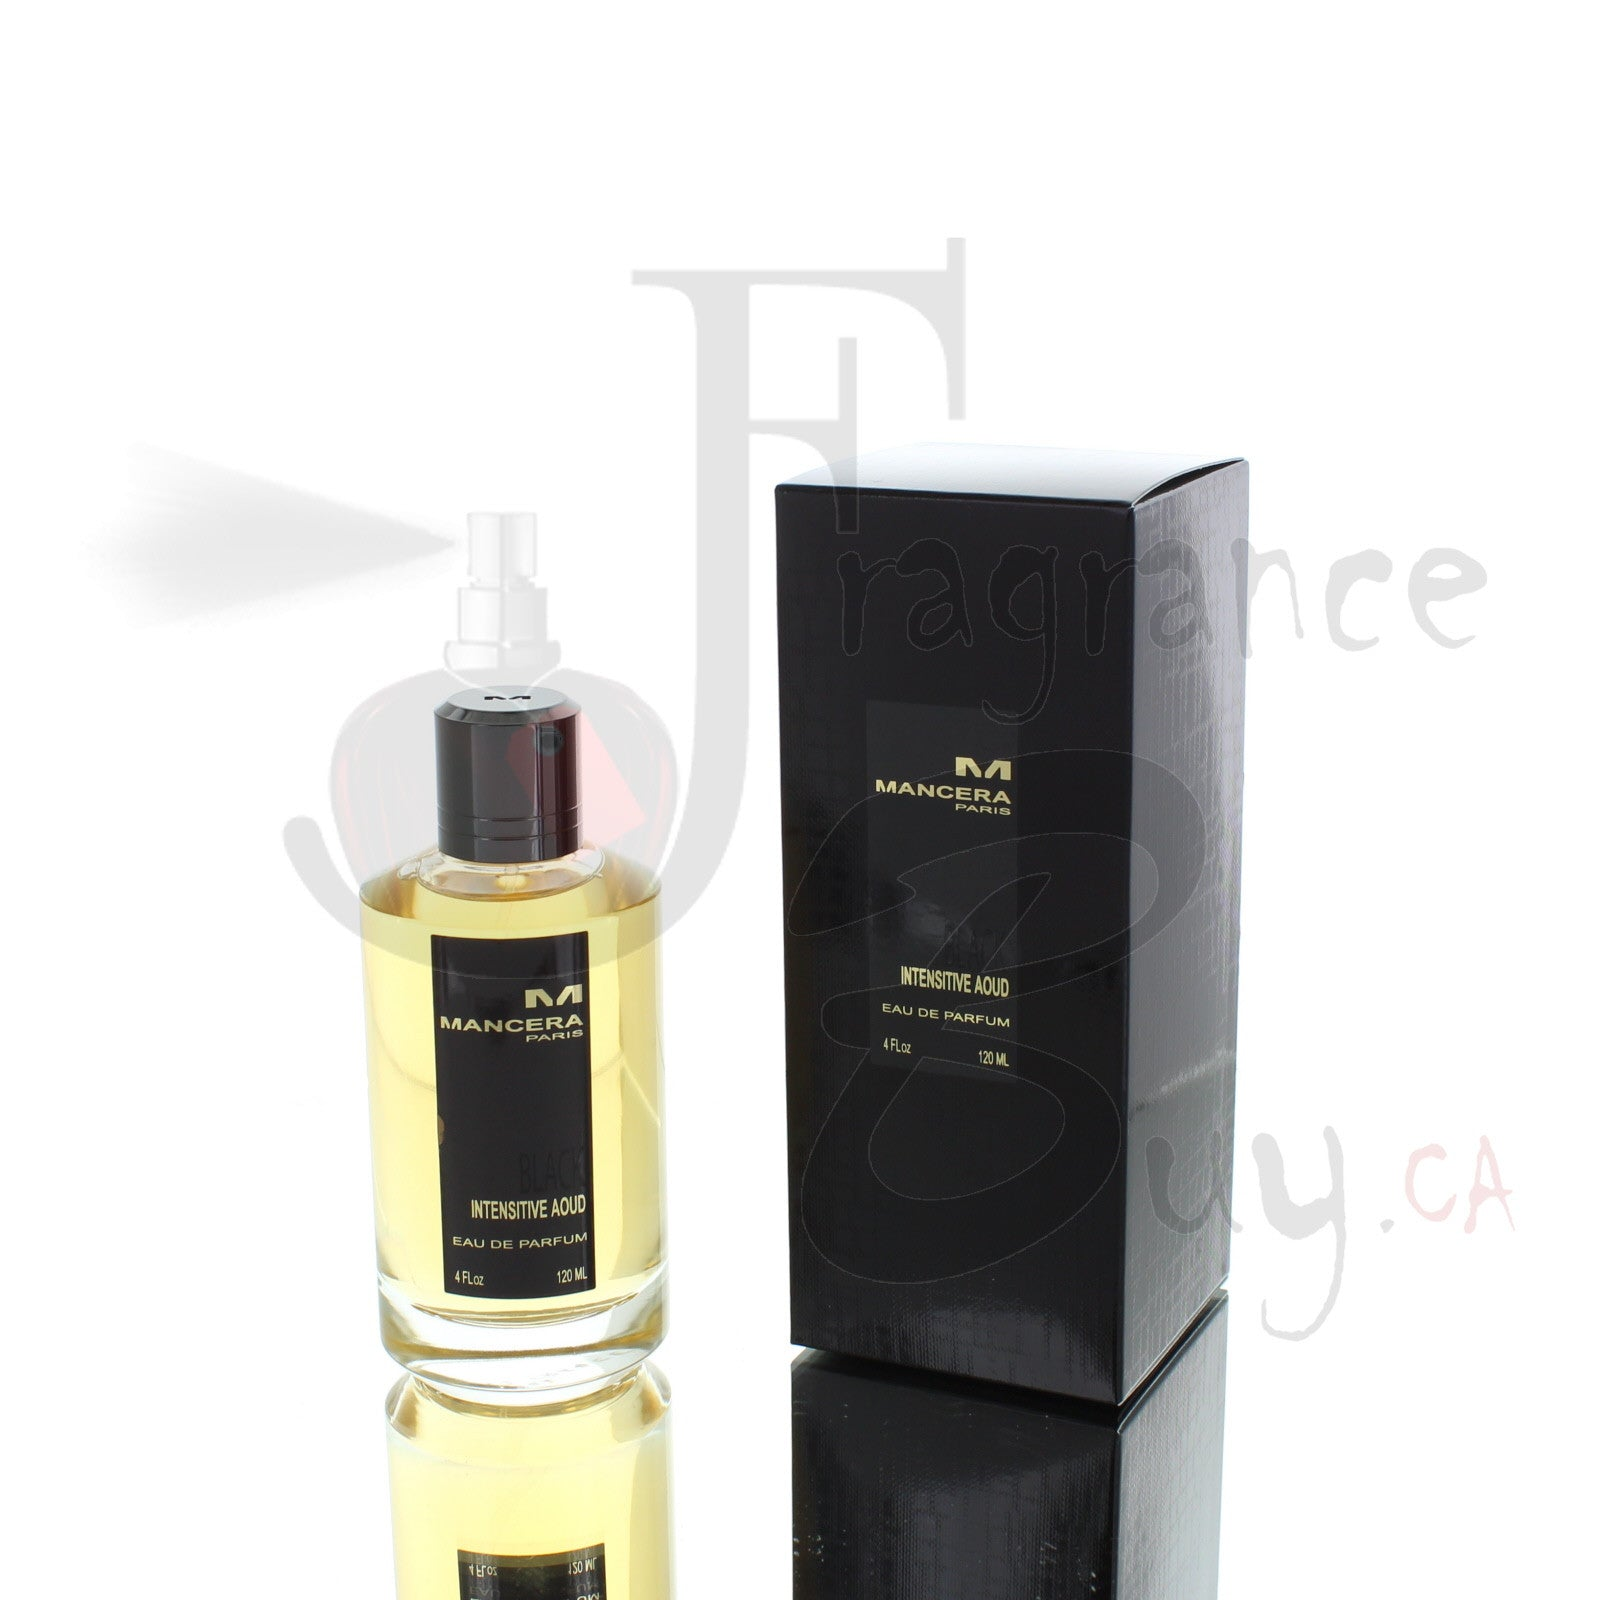 Mancera Black Intensive Aoud For Man/Woman